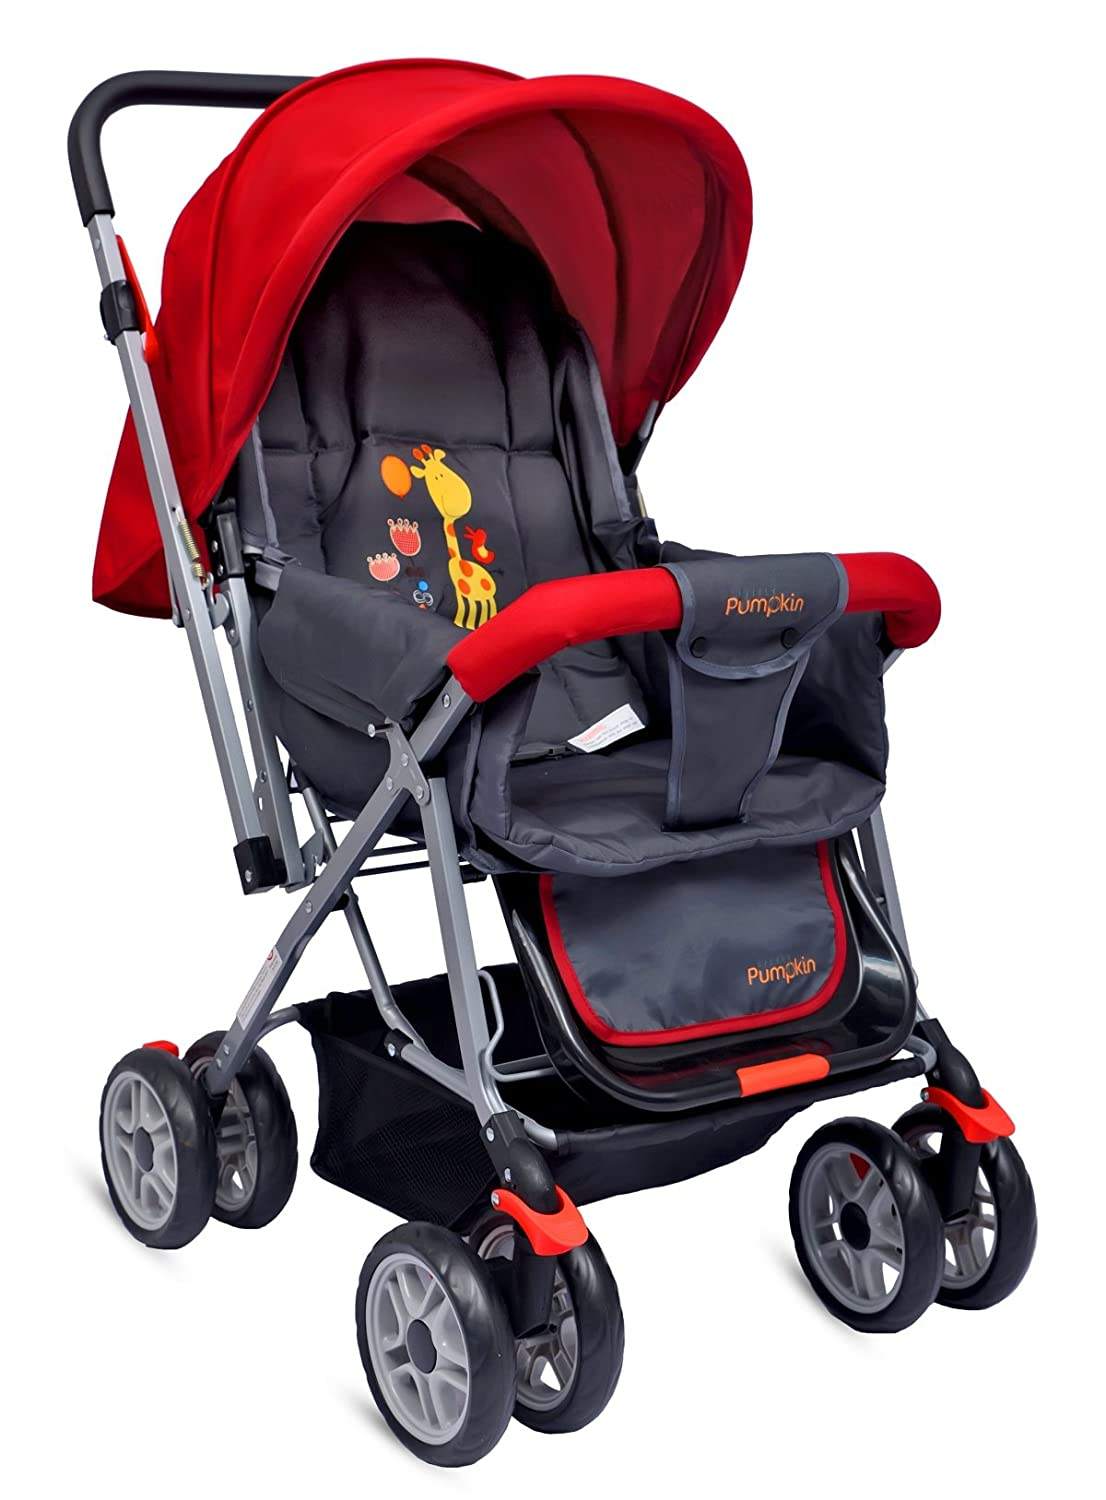 Little Pumpkin Baby Stroller Red Buy Online At Lowest